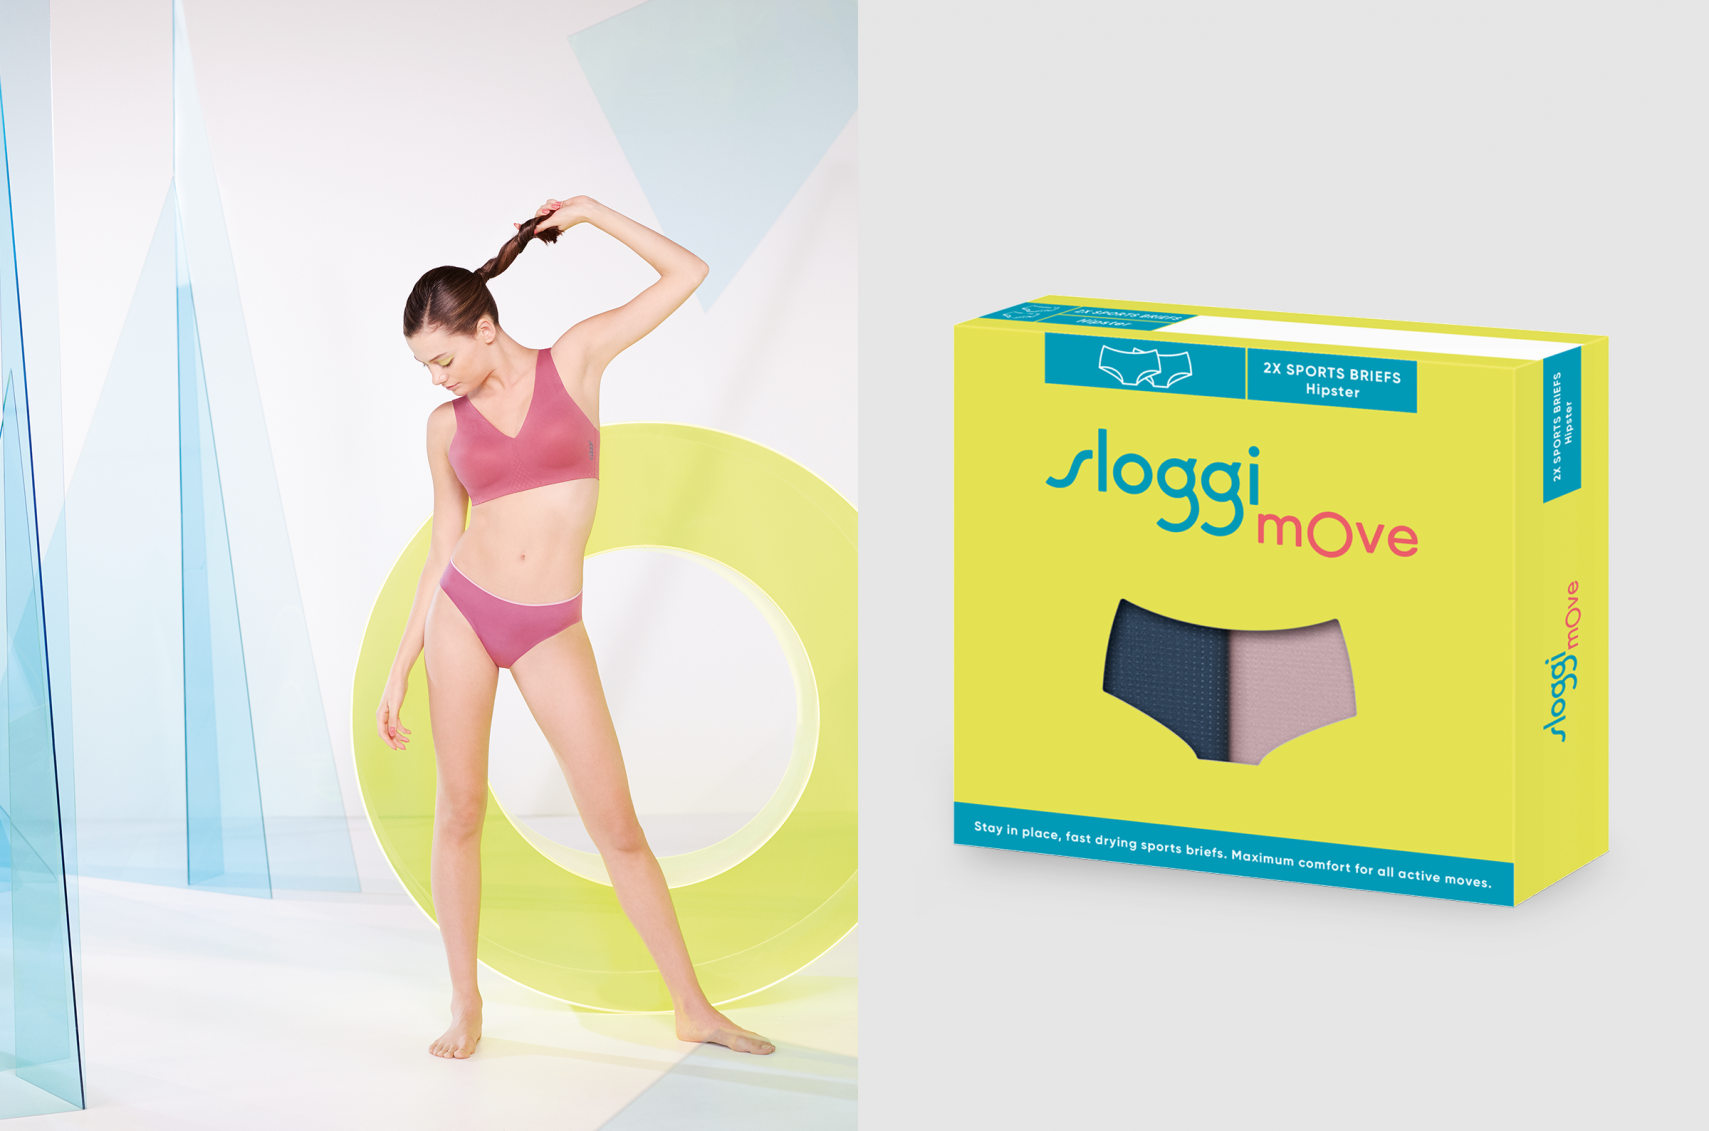 sloggimove_products2.png